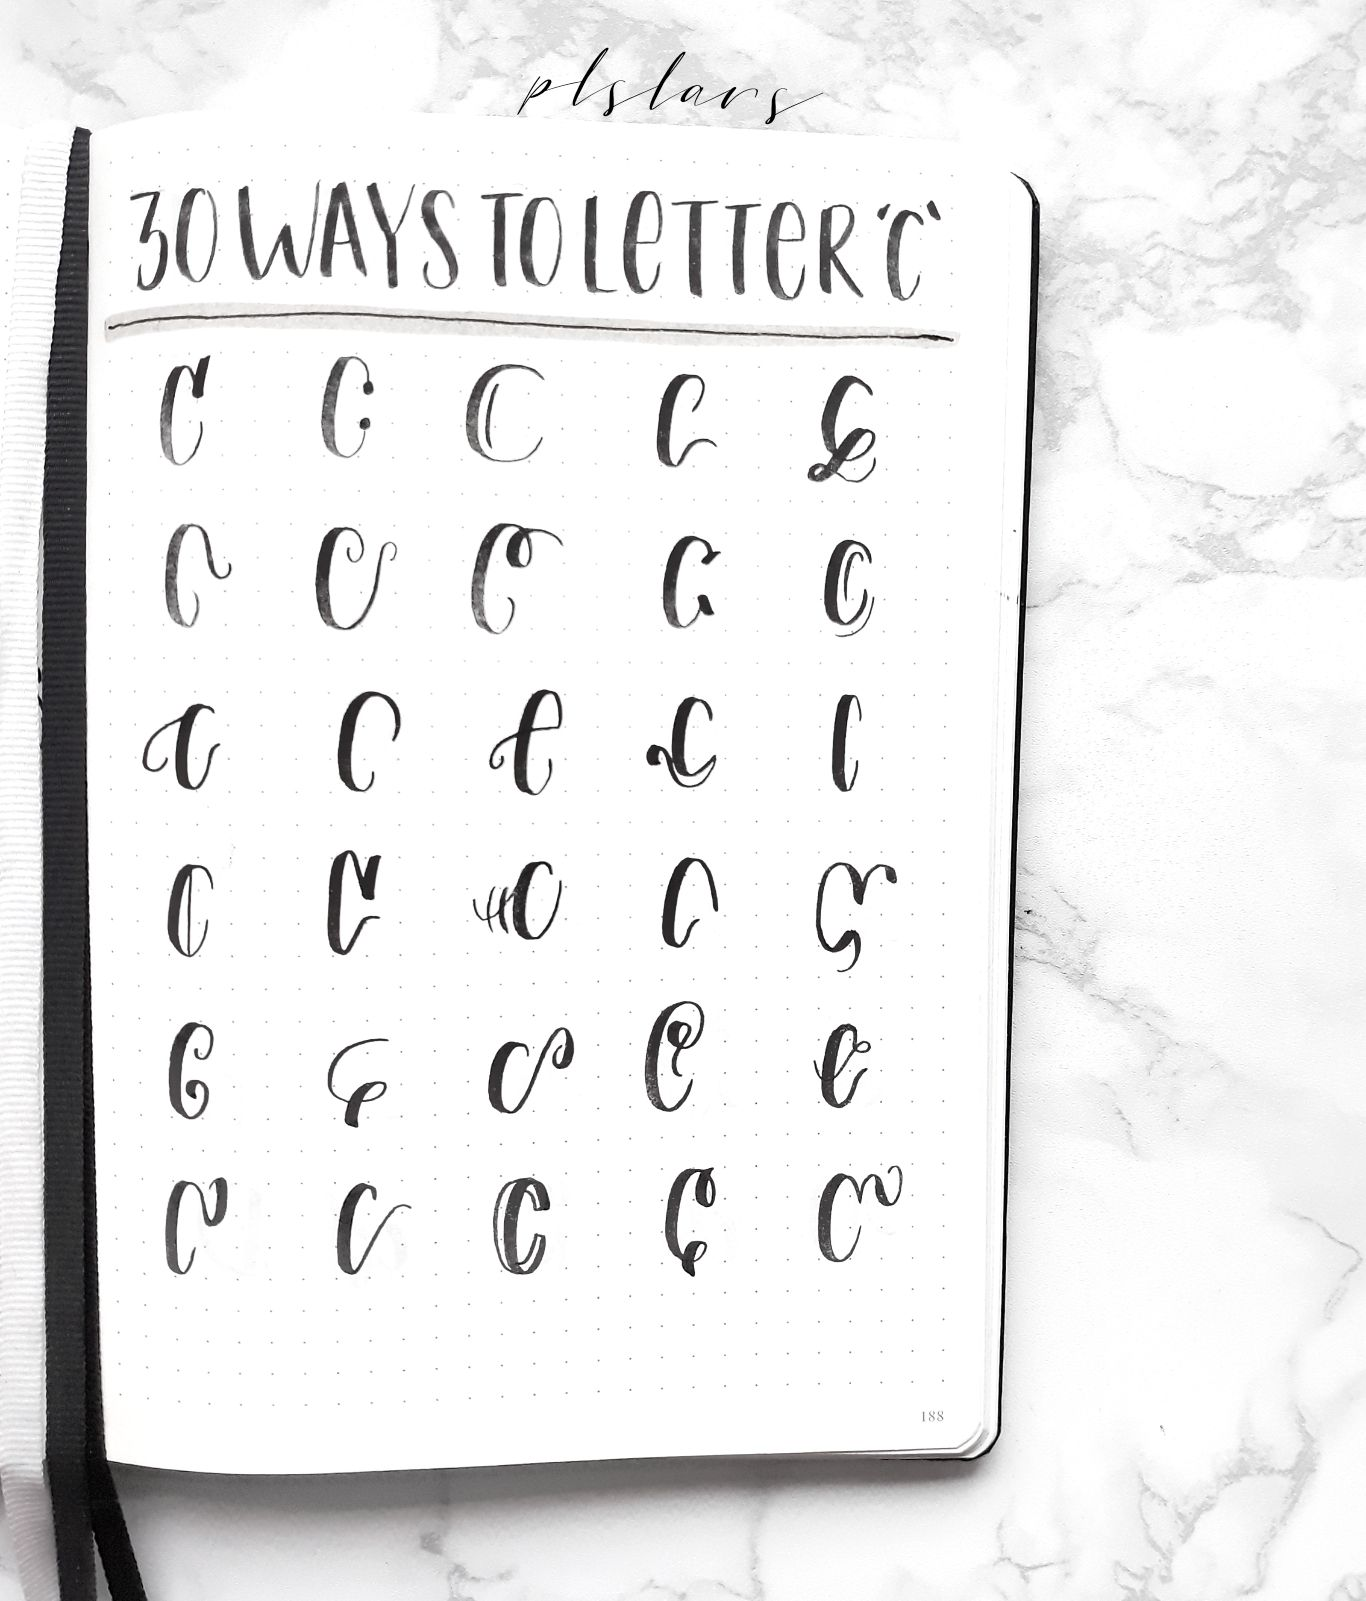 30 Ways To Letter C